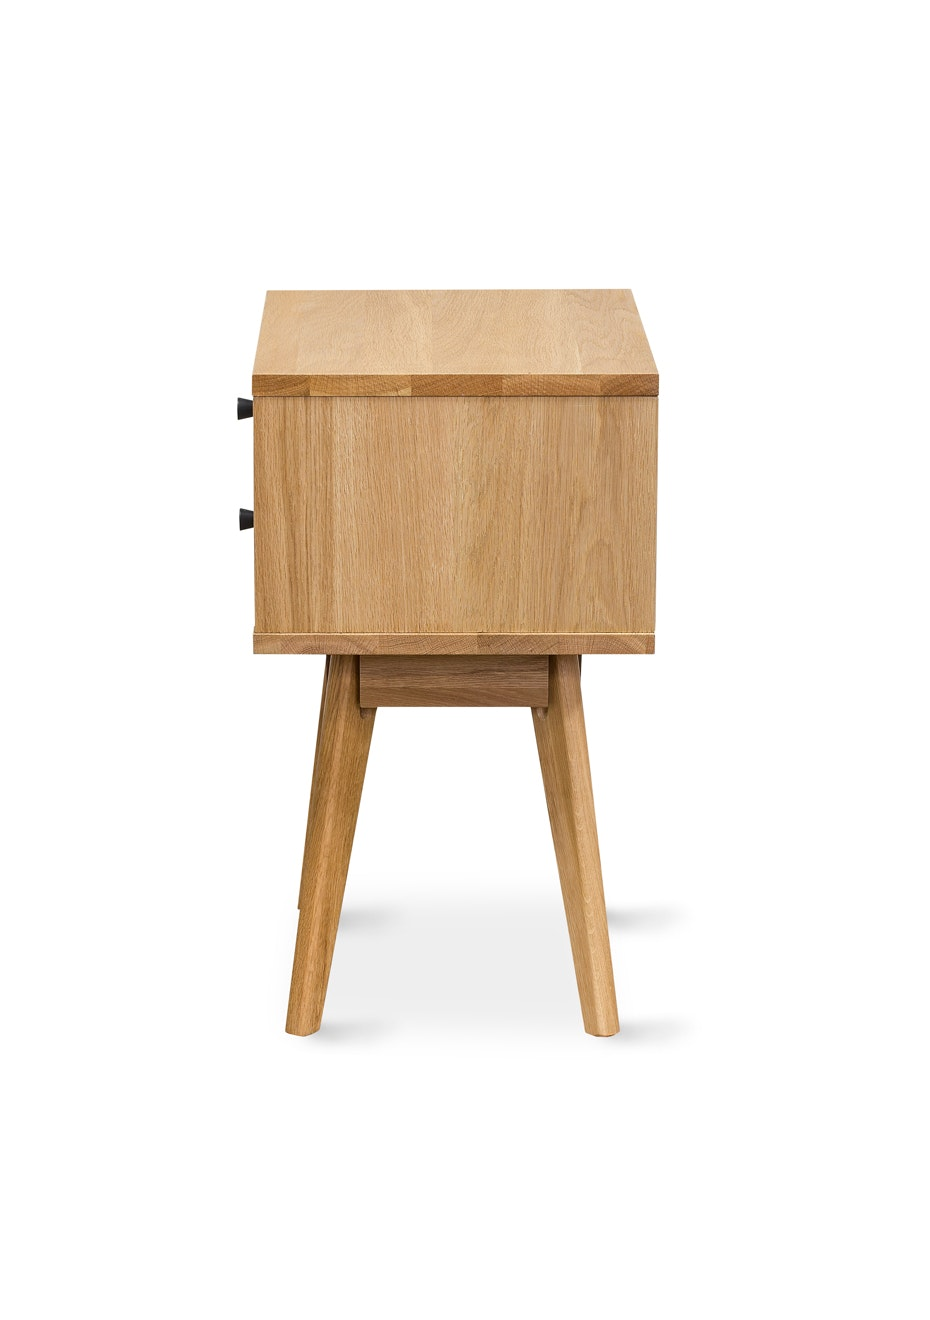 Furniture By Design - Radius 2 Tower  - White and Oak